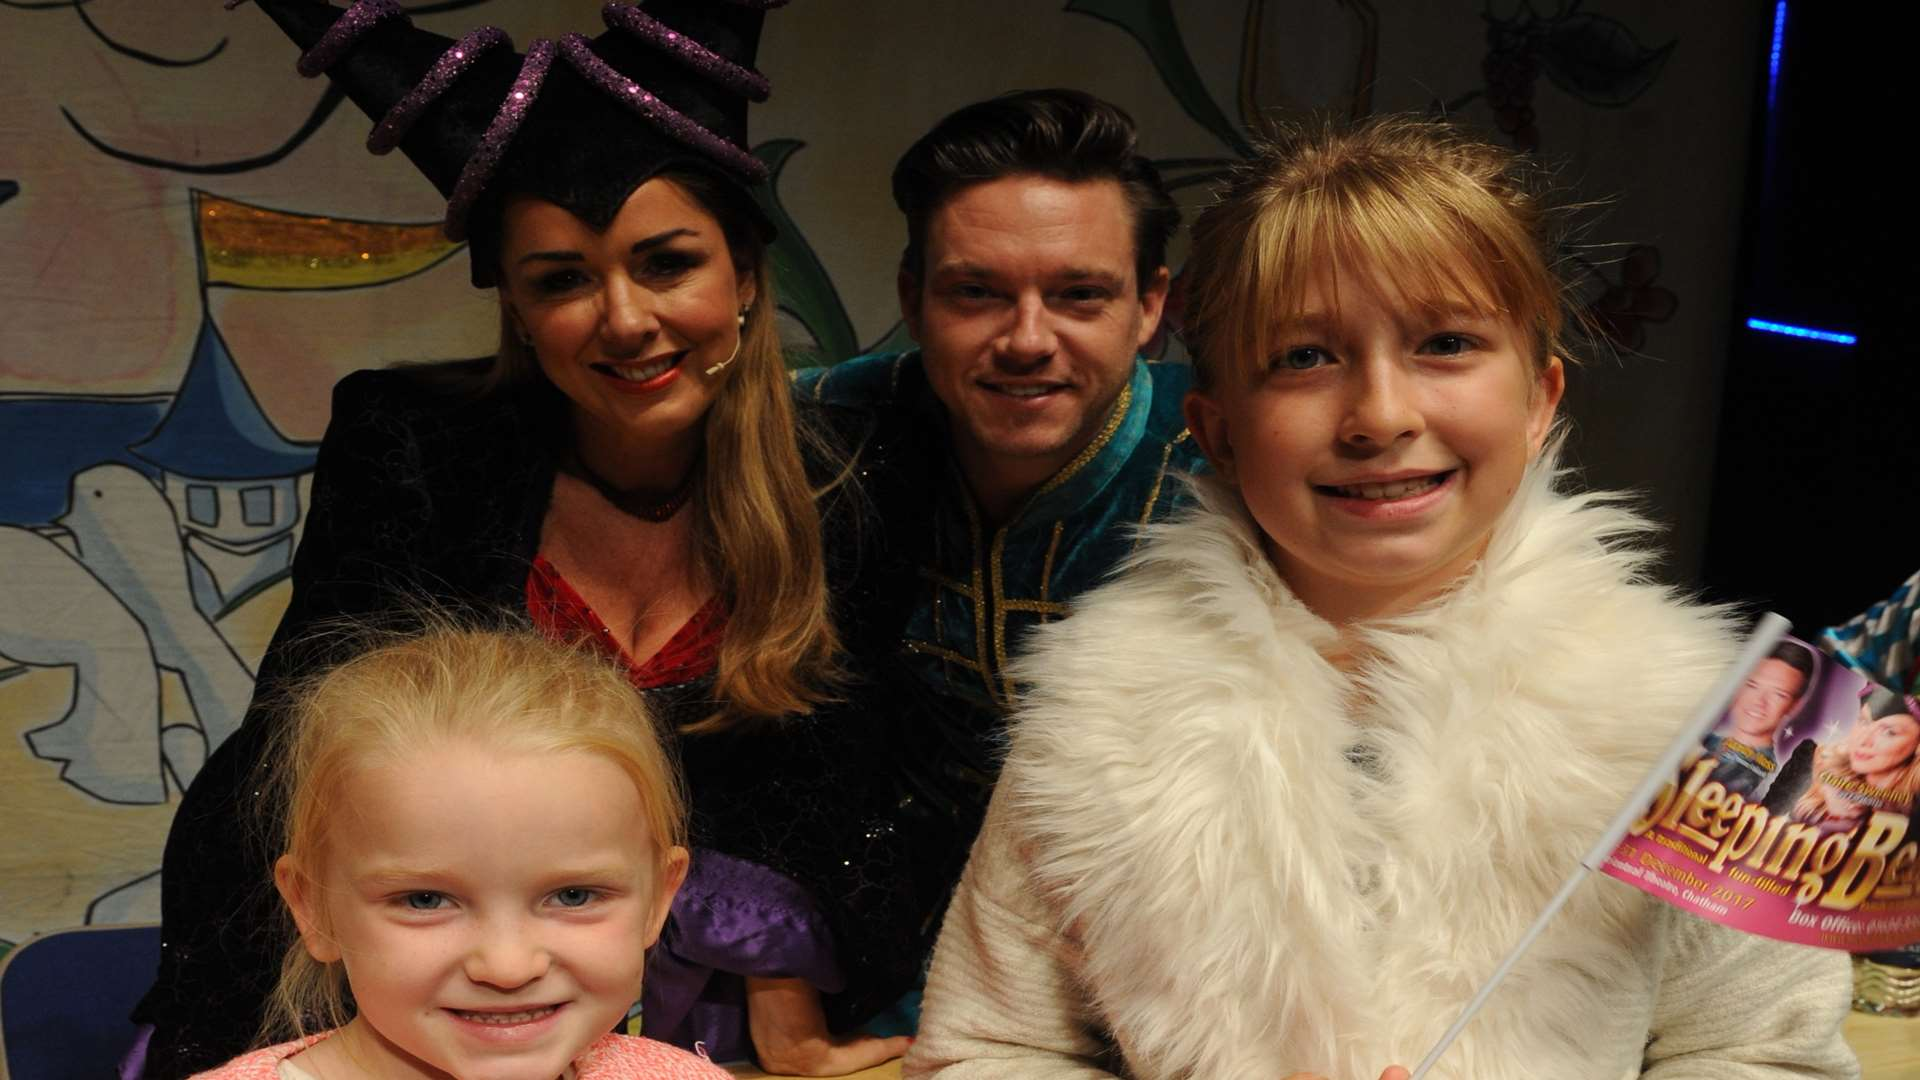 Claire Sweeney and Andy Moss meet Lily and Sophia Kirk at the launch of the Central Theatre's panto, Sleeping Beauty Picture: Steve Crispe